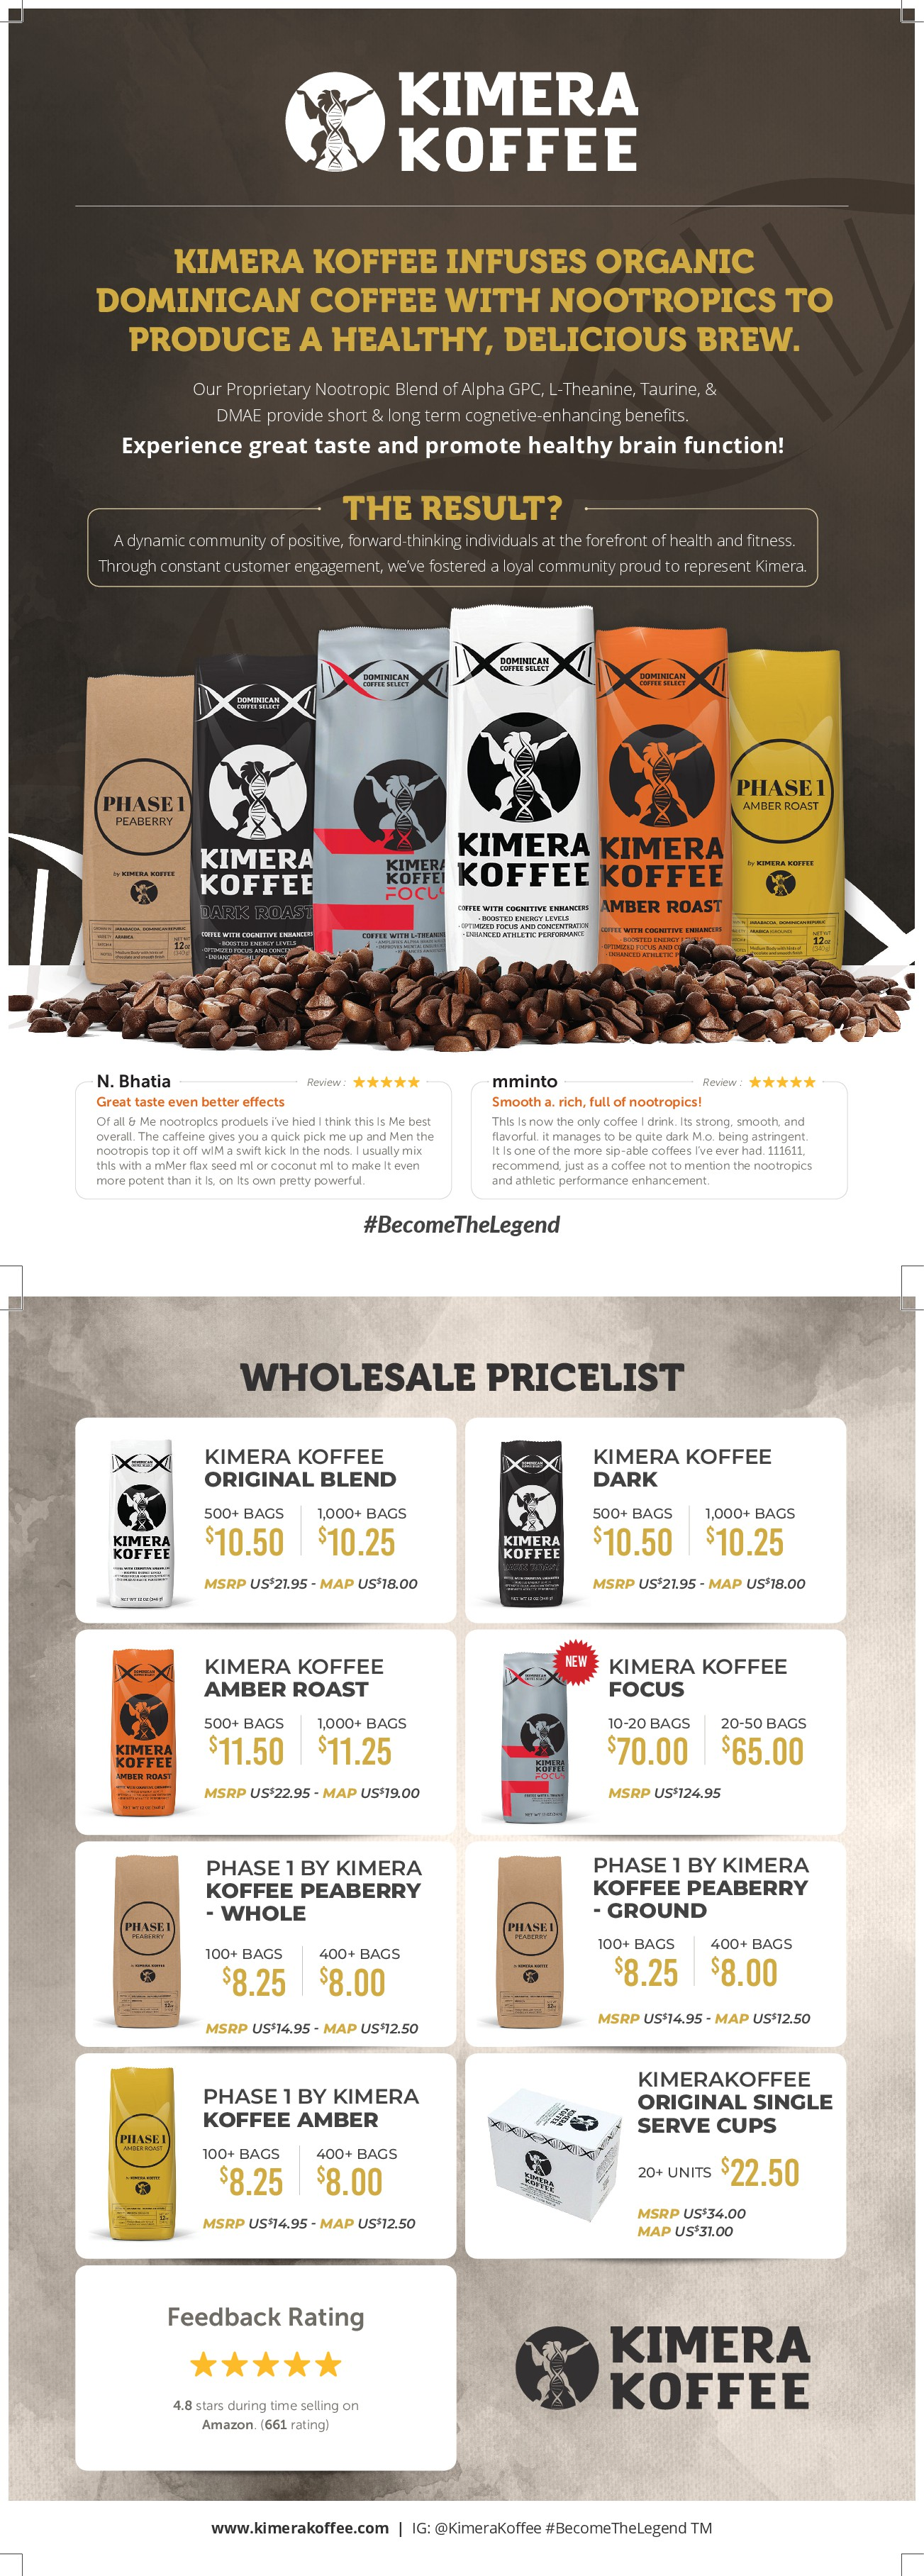 Kimera Koffee Wholesale Sell Sheet